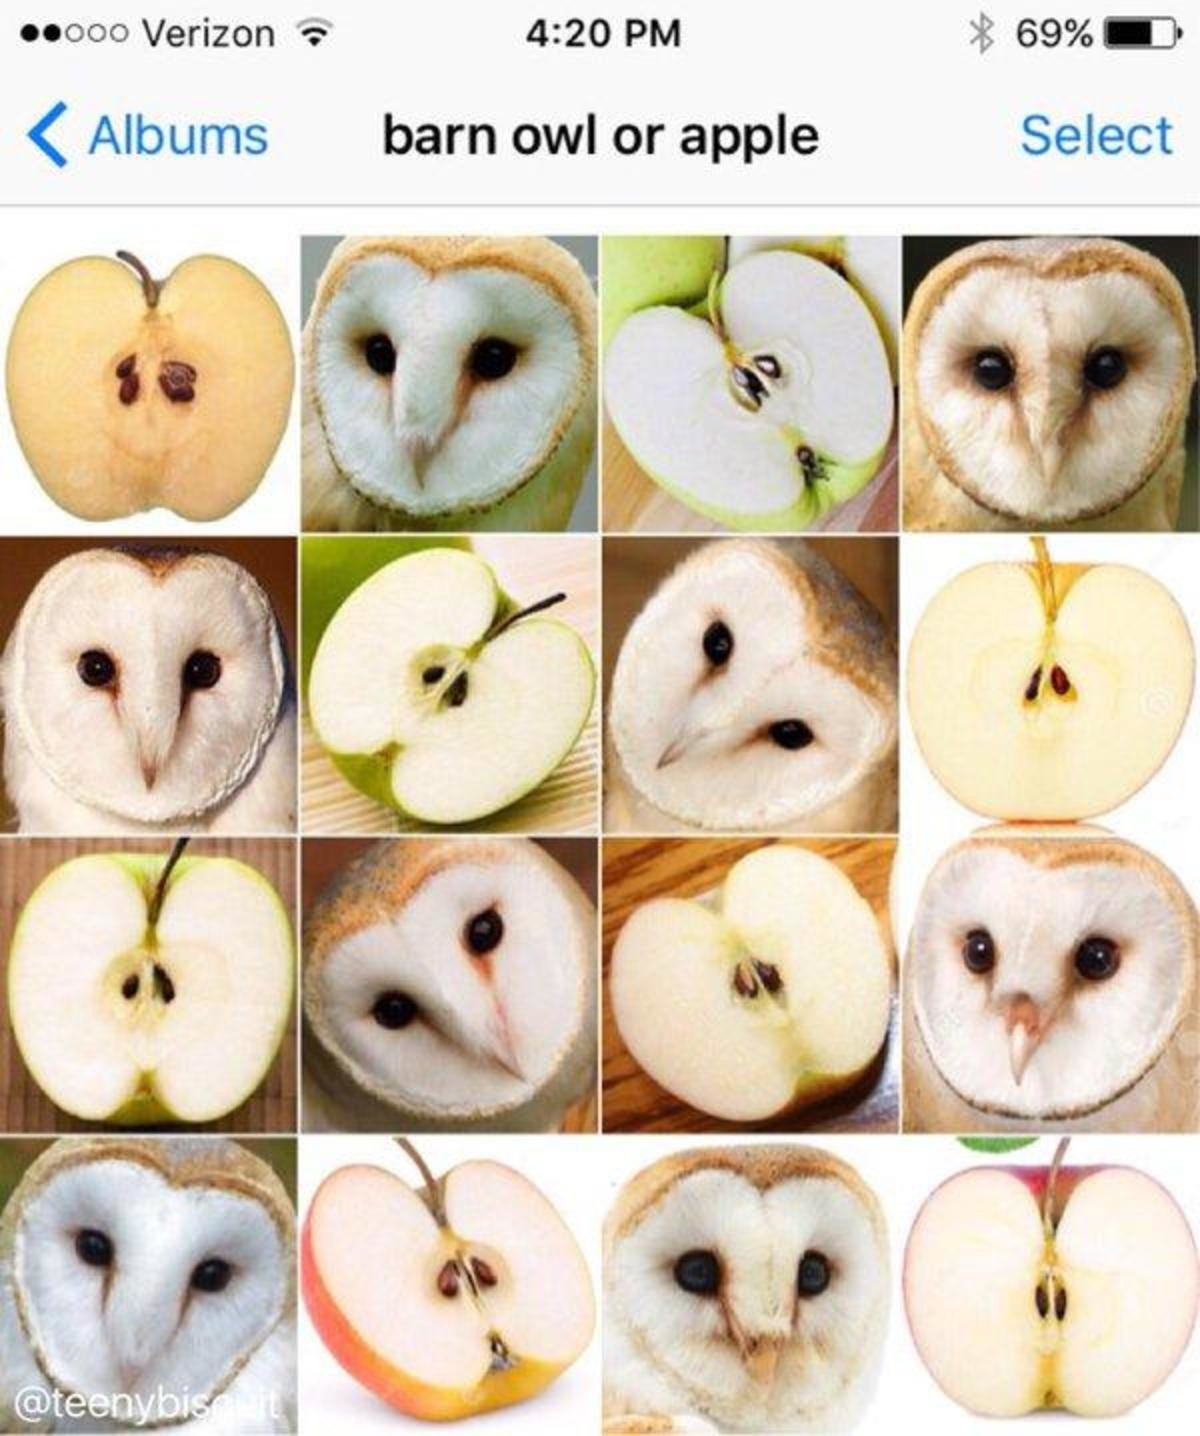 """Tap Tap Tik Tak. . II: -can Verizon Git"""" 4: 20 PM t 69% -3 4 Albums barn owl or apple Select. Someone could've just whacked some golf balls into a potato field and nobody noticed until they were in pre-made products."""